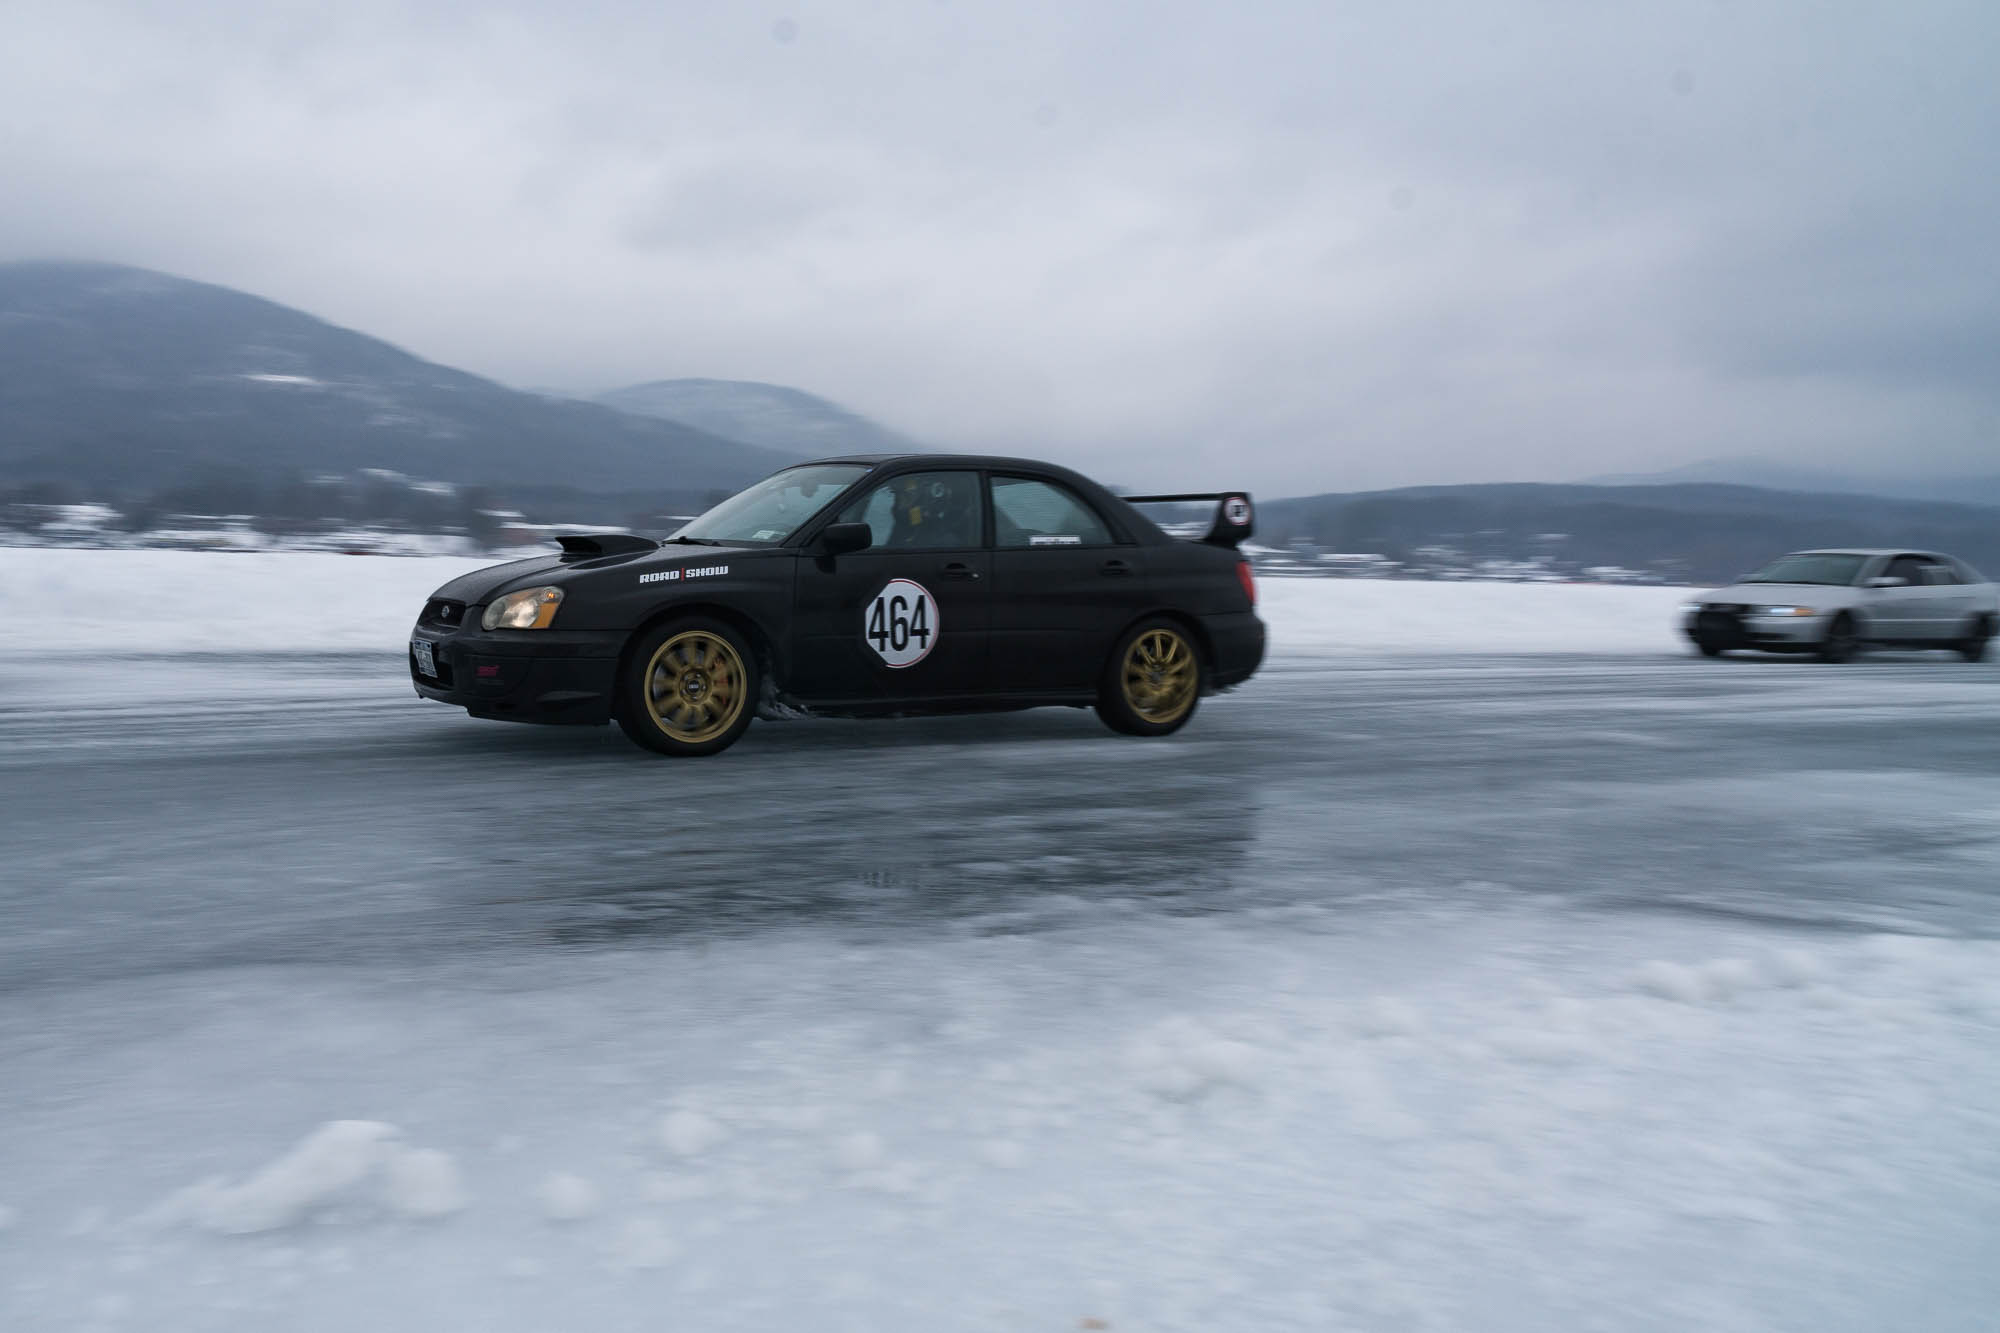 Subaru WRX STi Ice Races